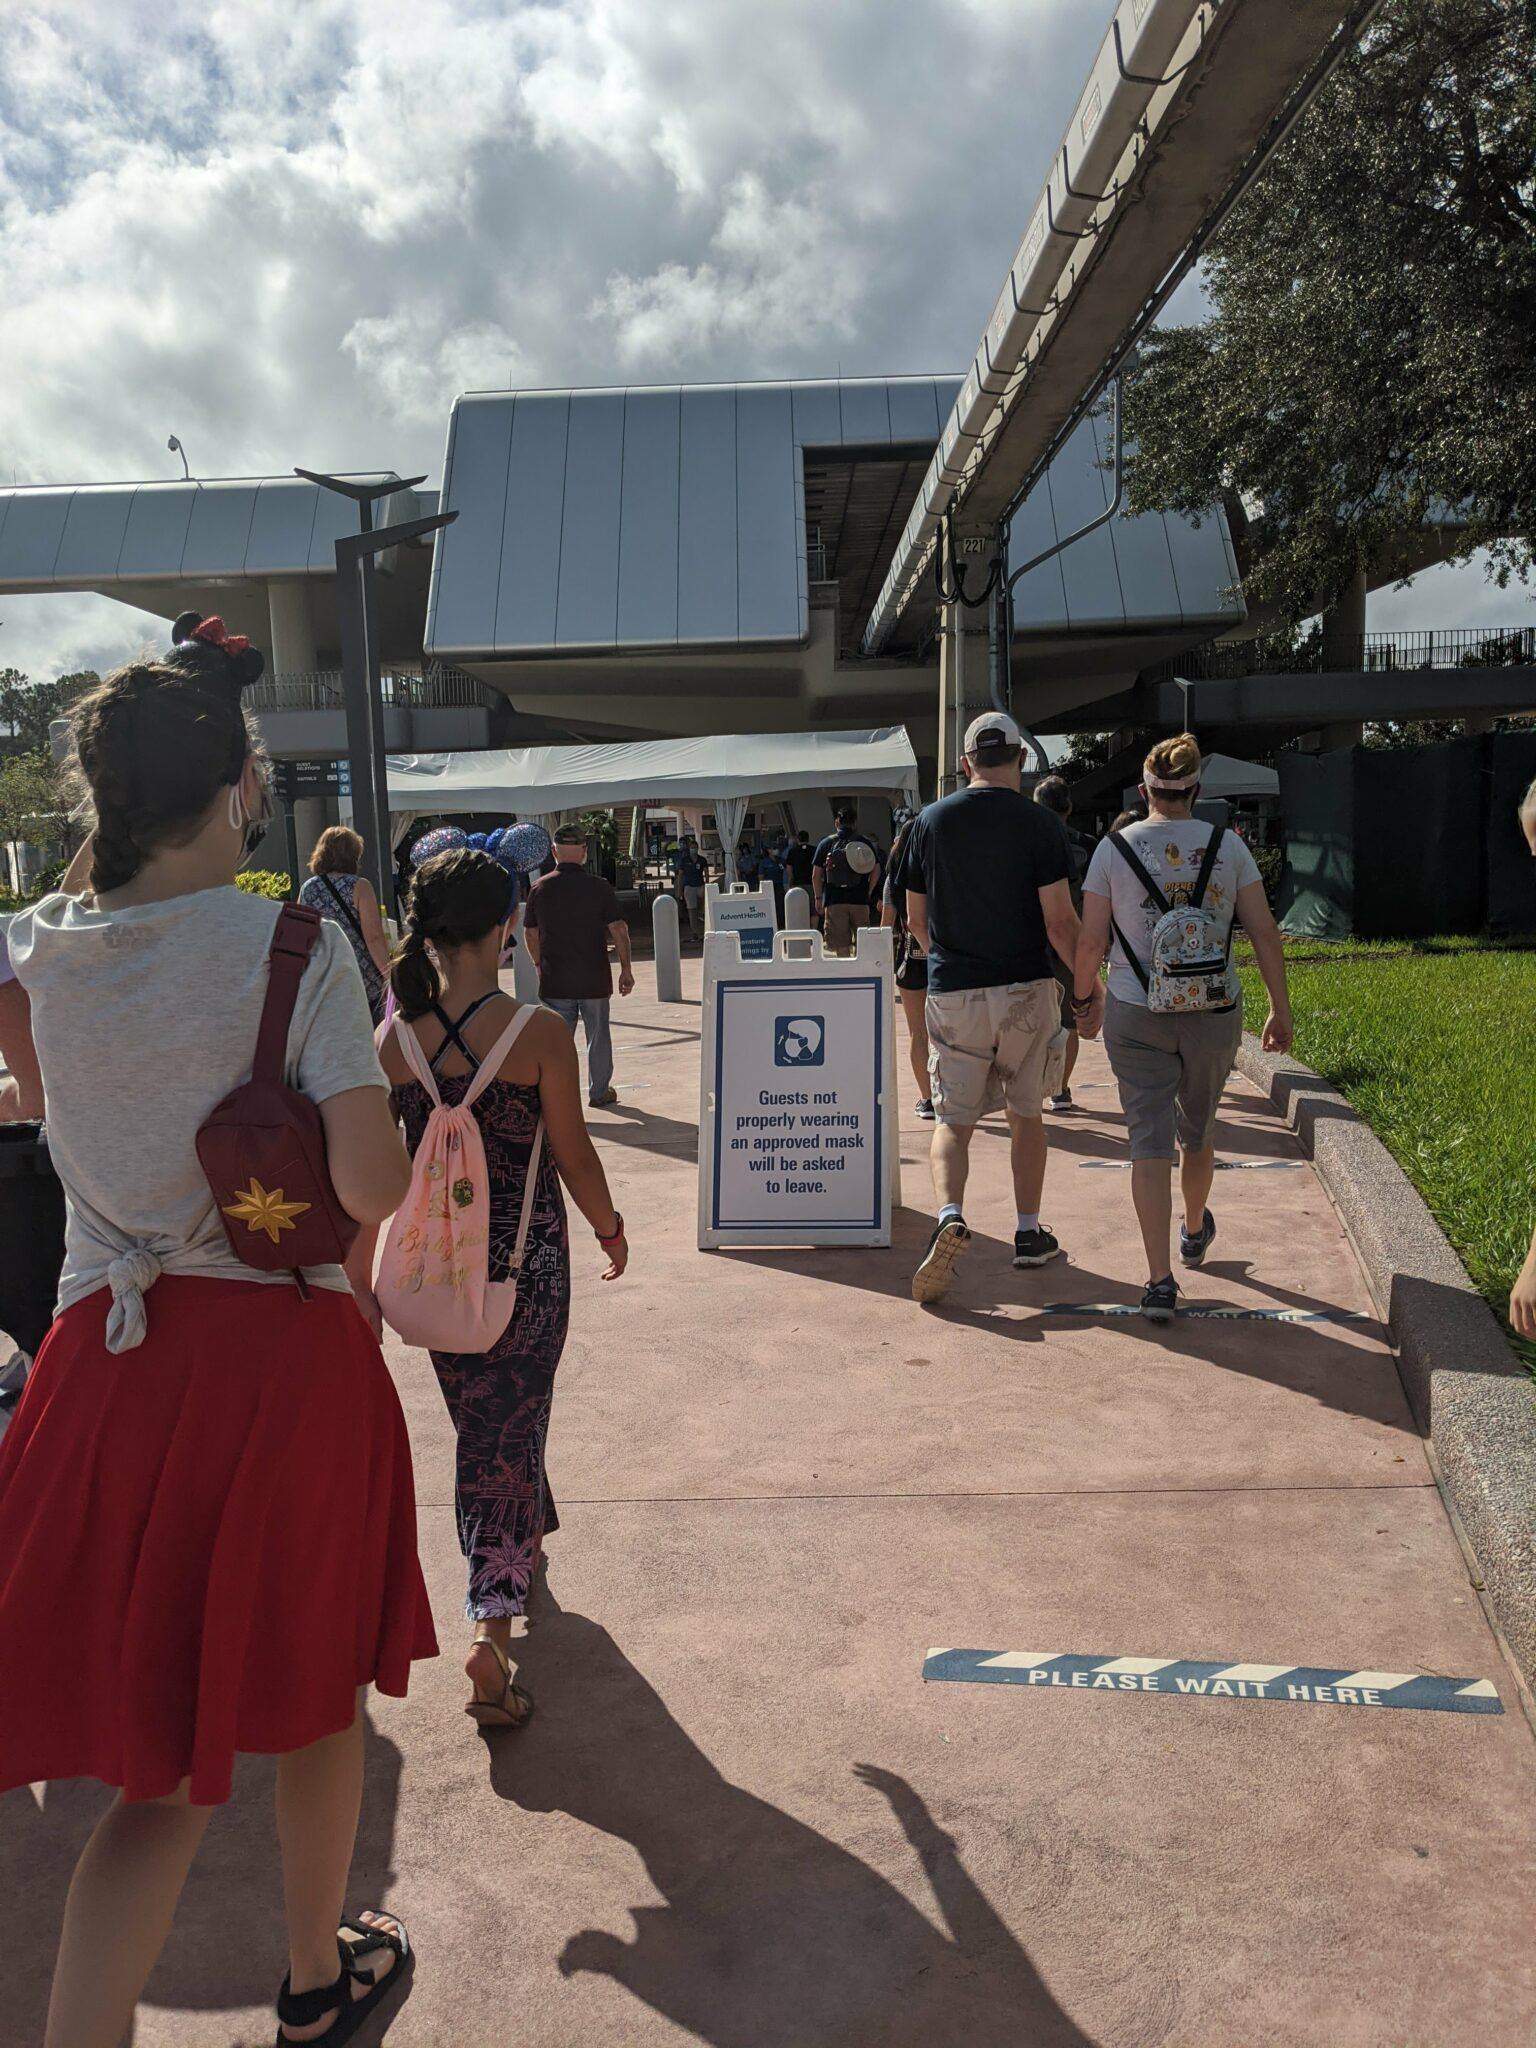 Should You Visit Disney World During the Pandemic? All Things with Purpose Sarah Lemp 20